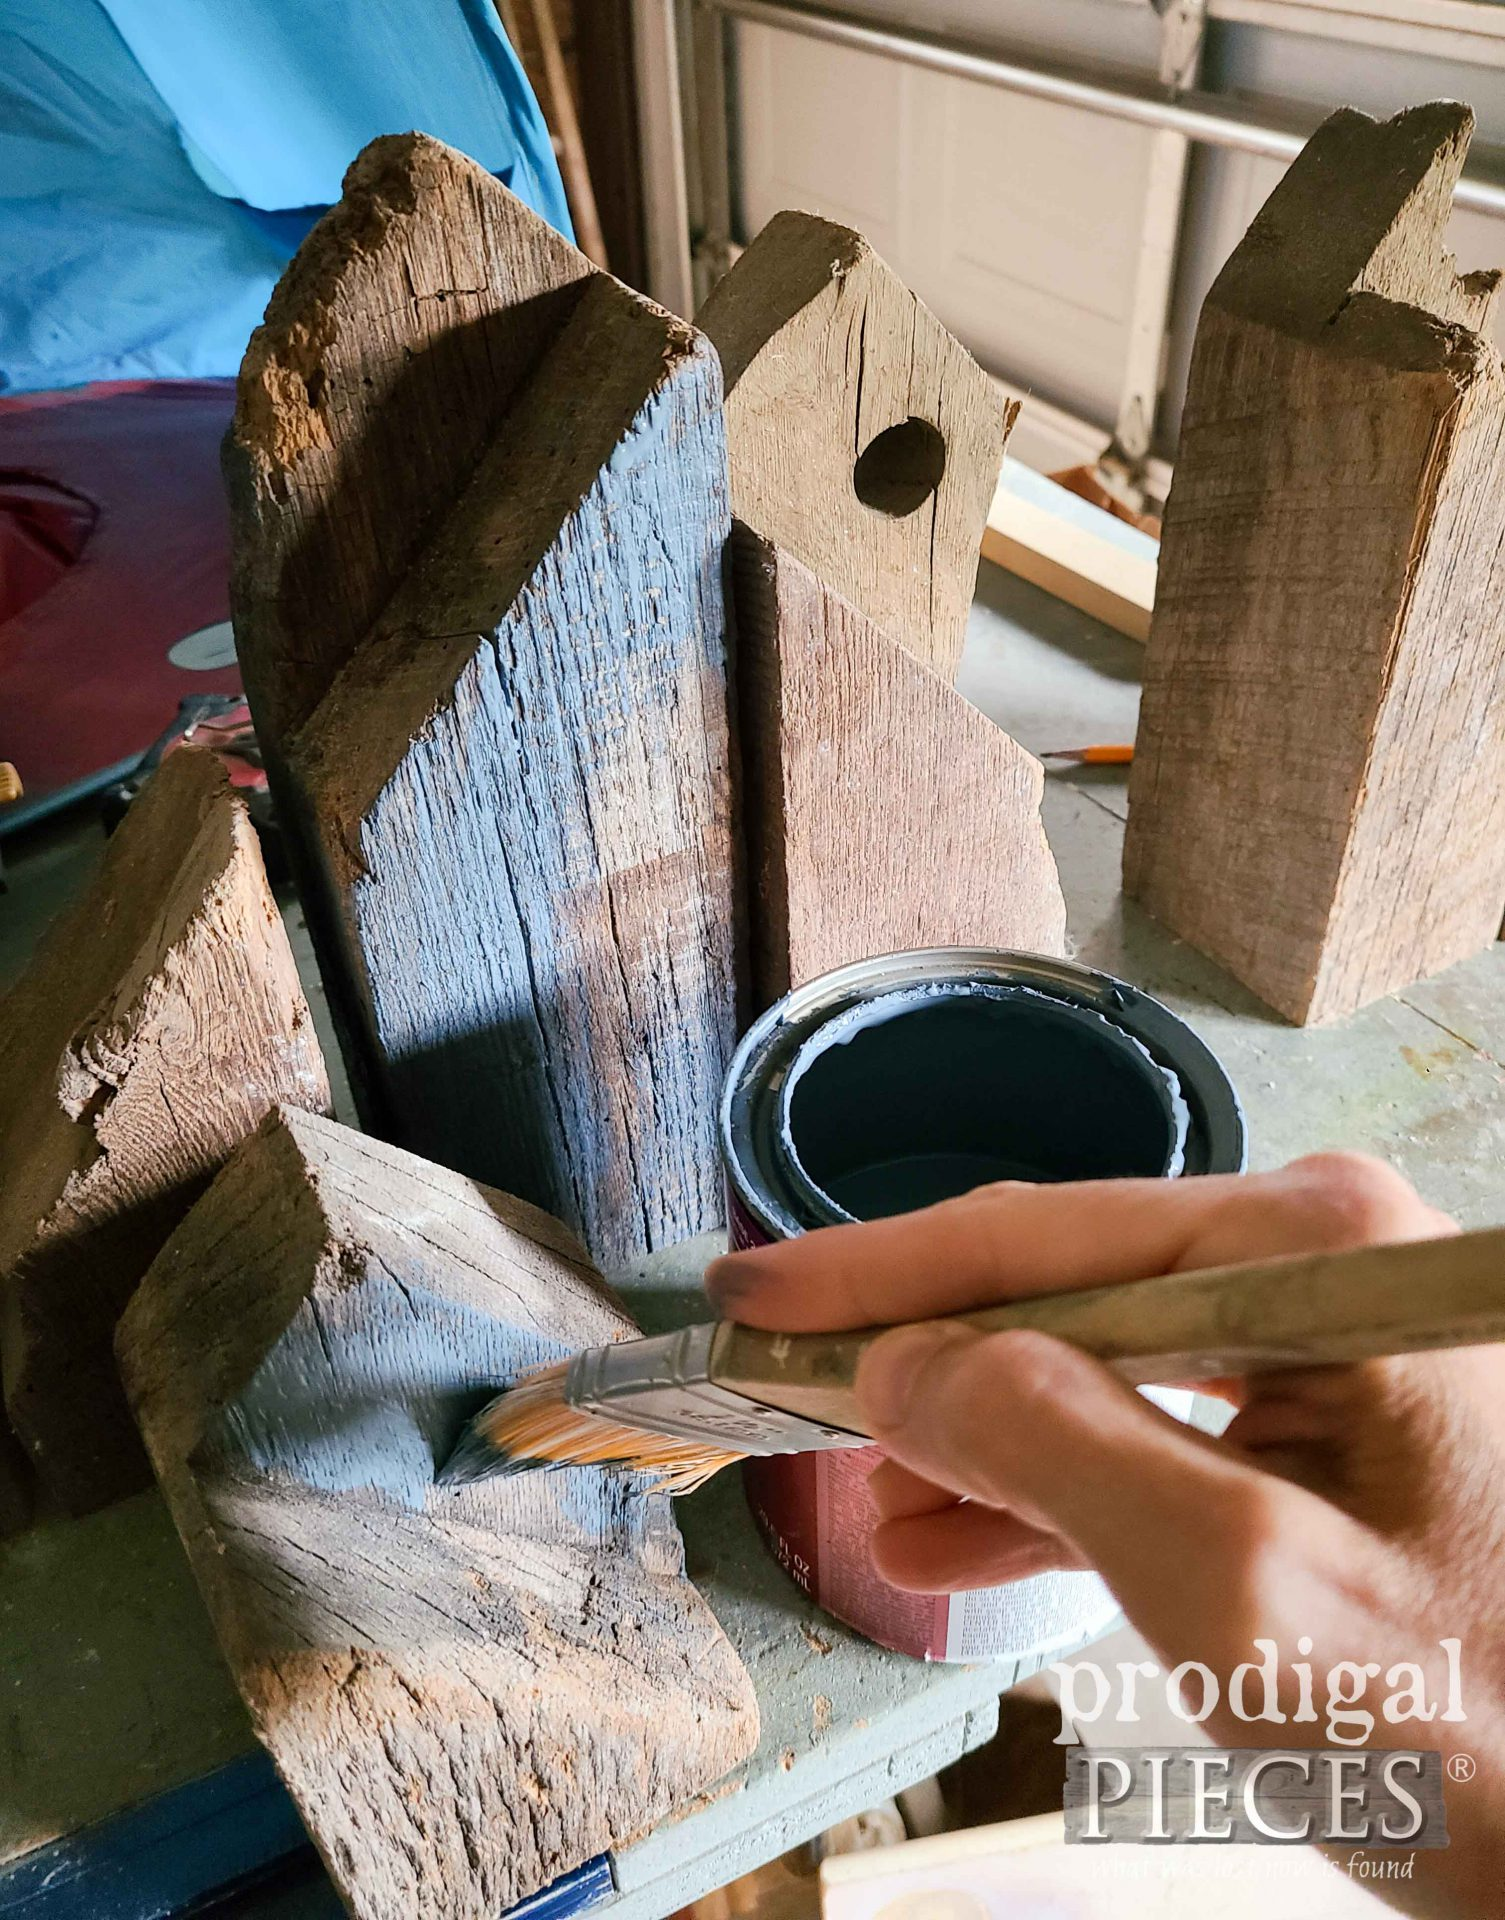 Painting Reclaimed Wood Houses | prodigalpieces.com #prodigalpieces